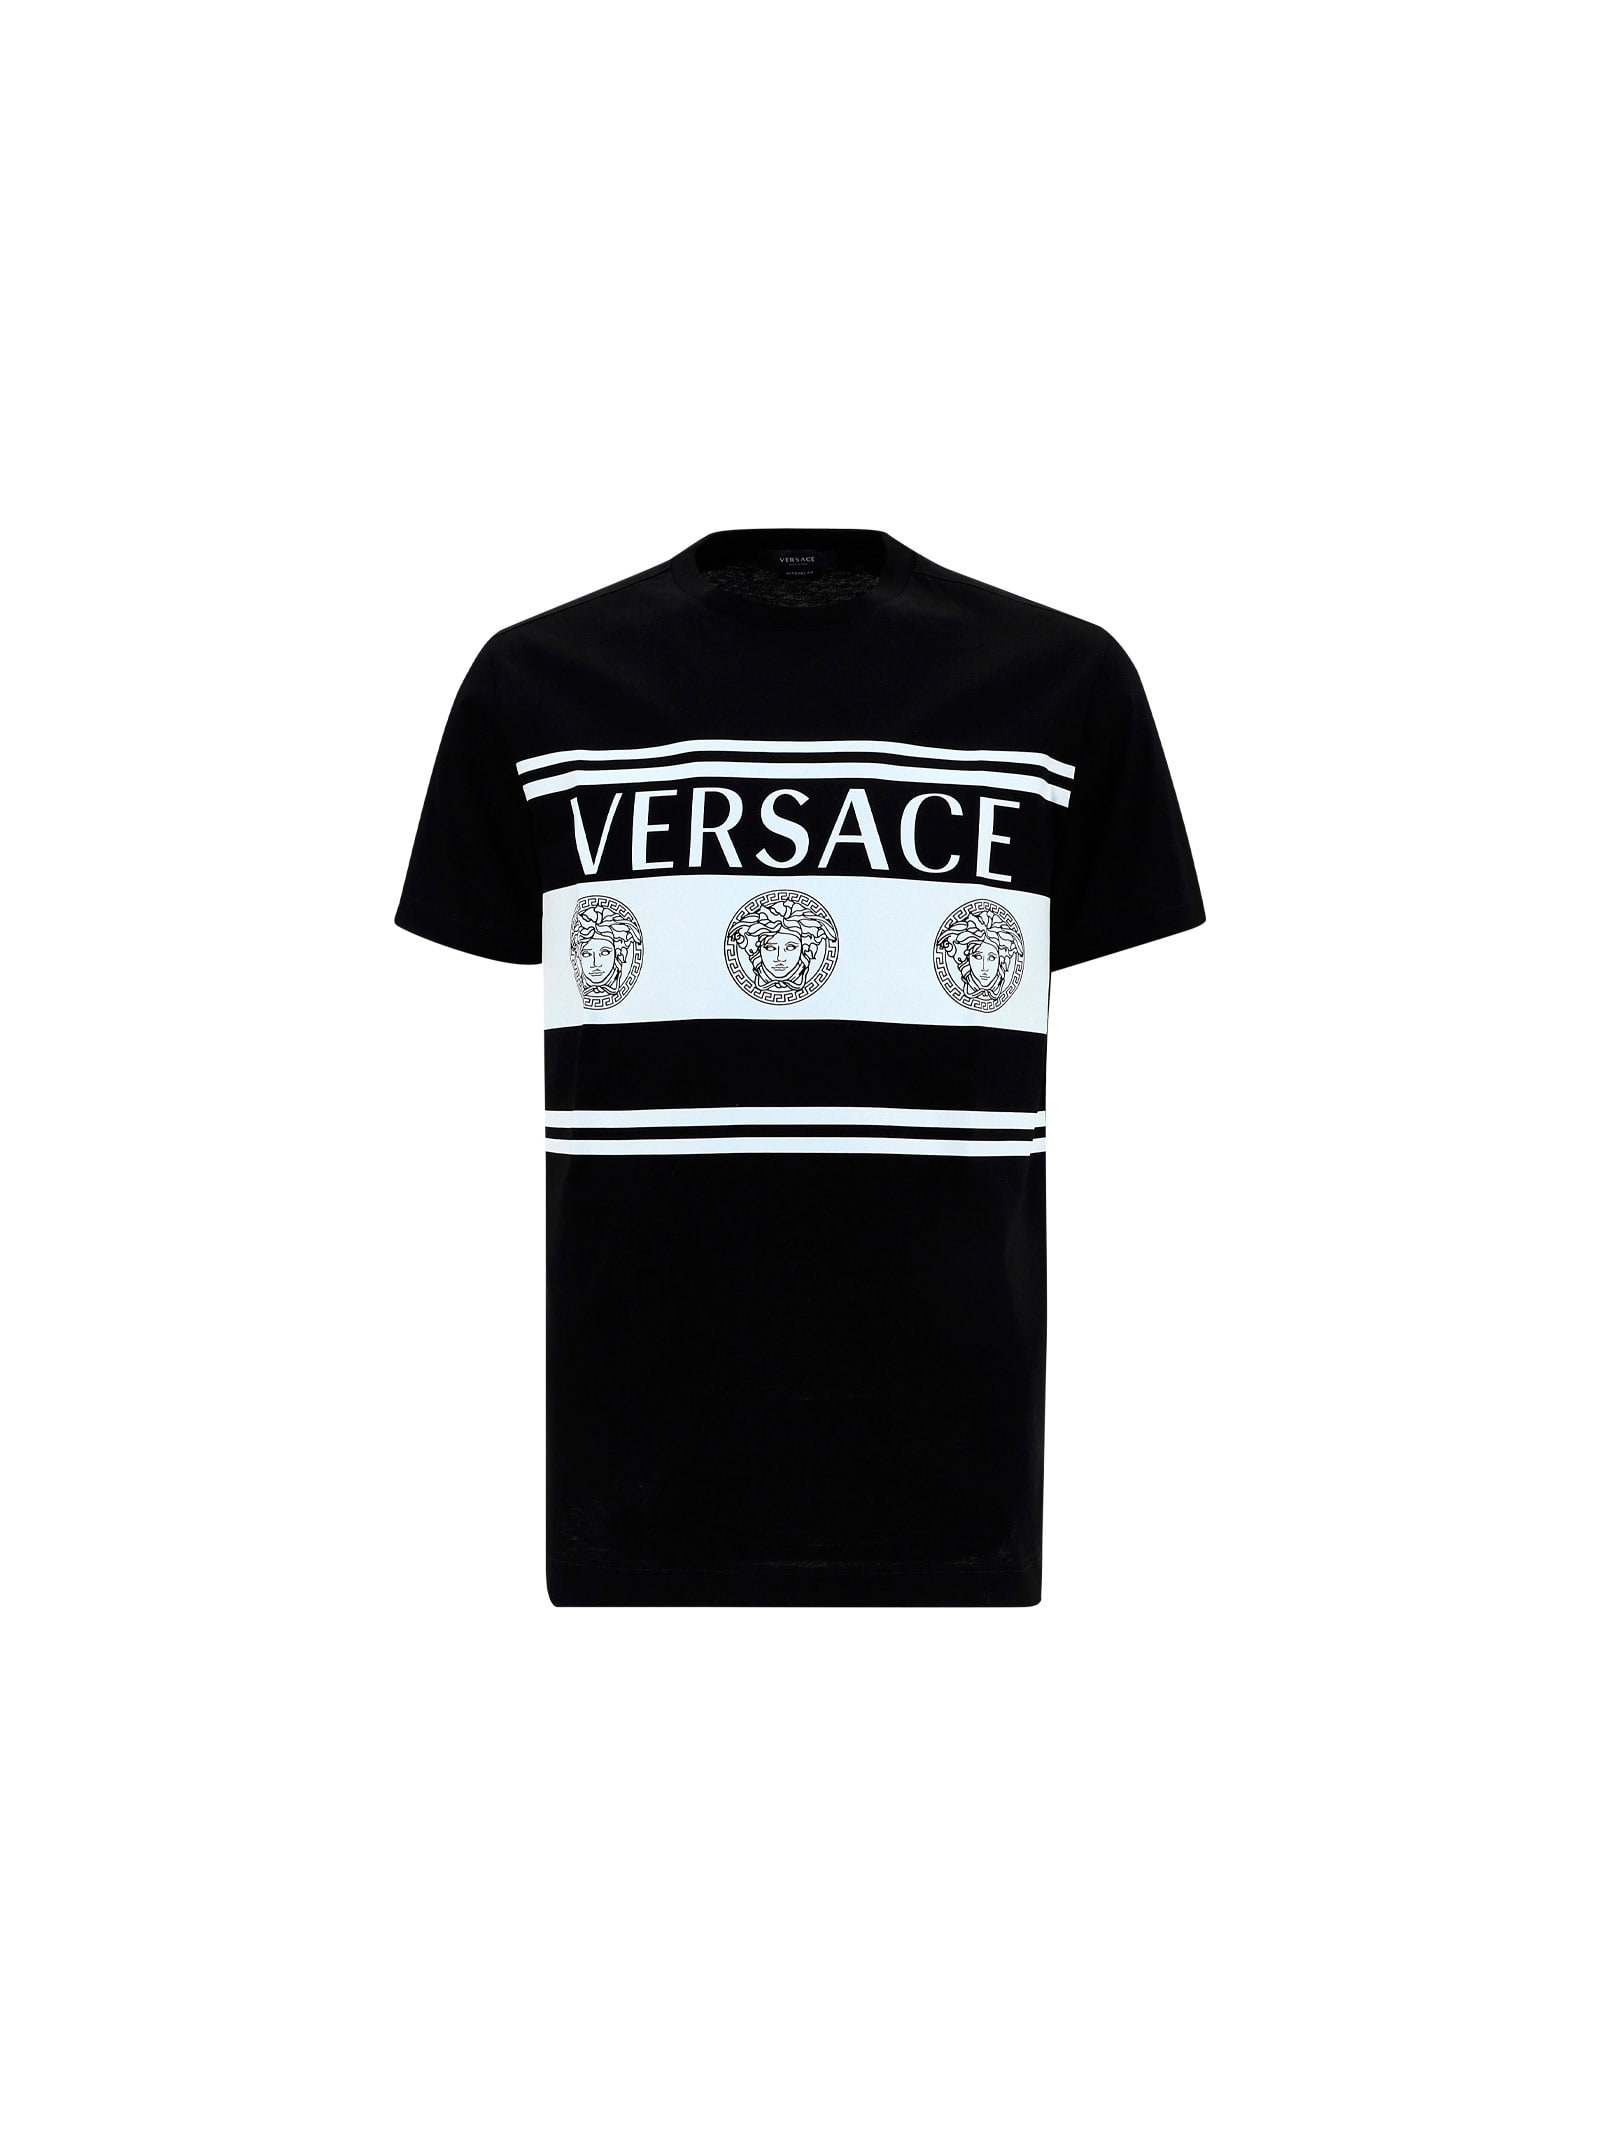 Gianni Versace T-shirt